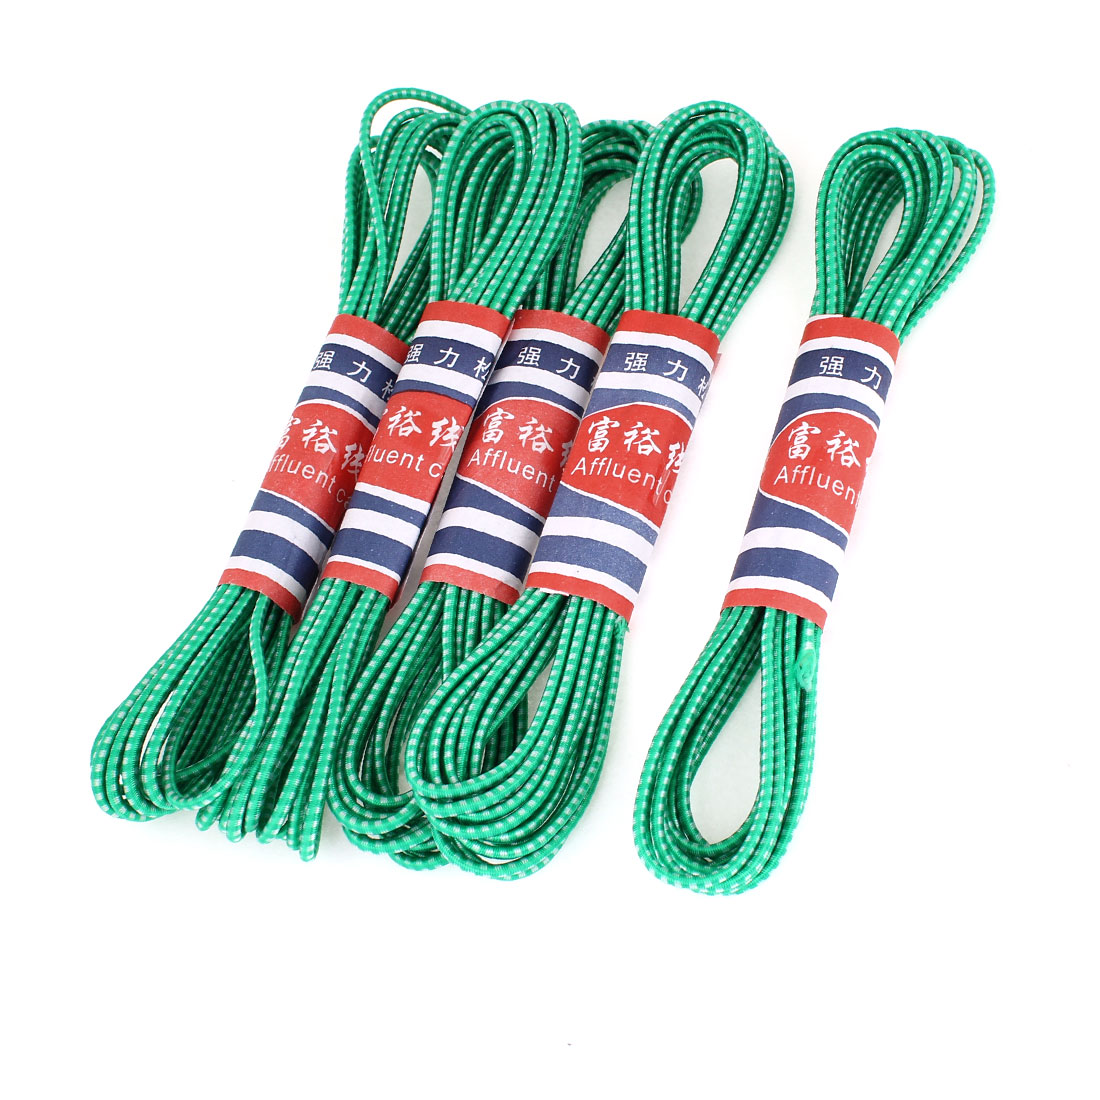 Unique Bargains 5 x Pants Trousers Replacement Green Round Elastic String 4.1M 13.5Ft Length